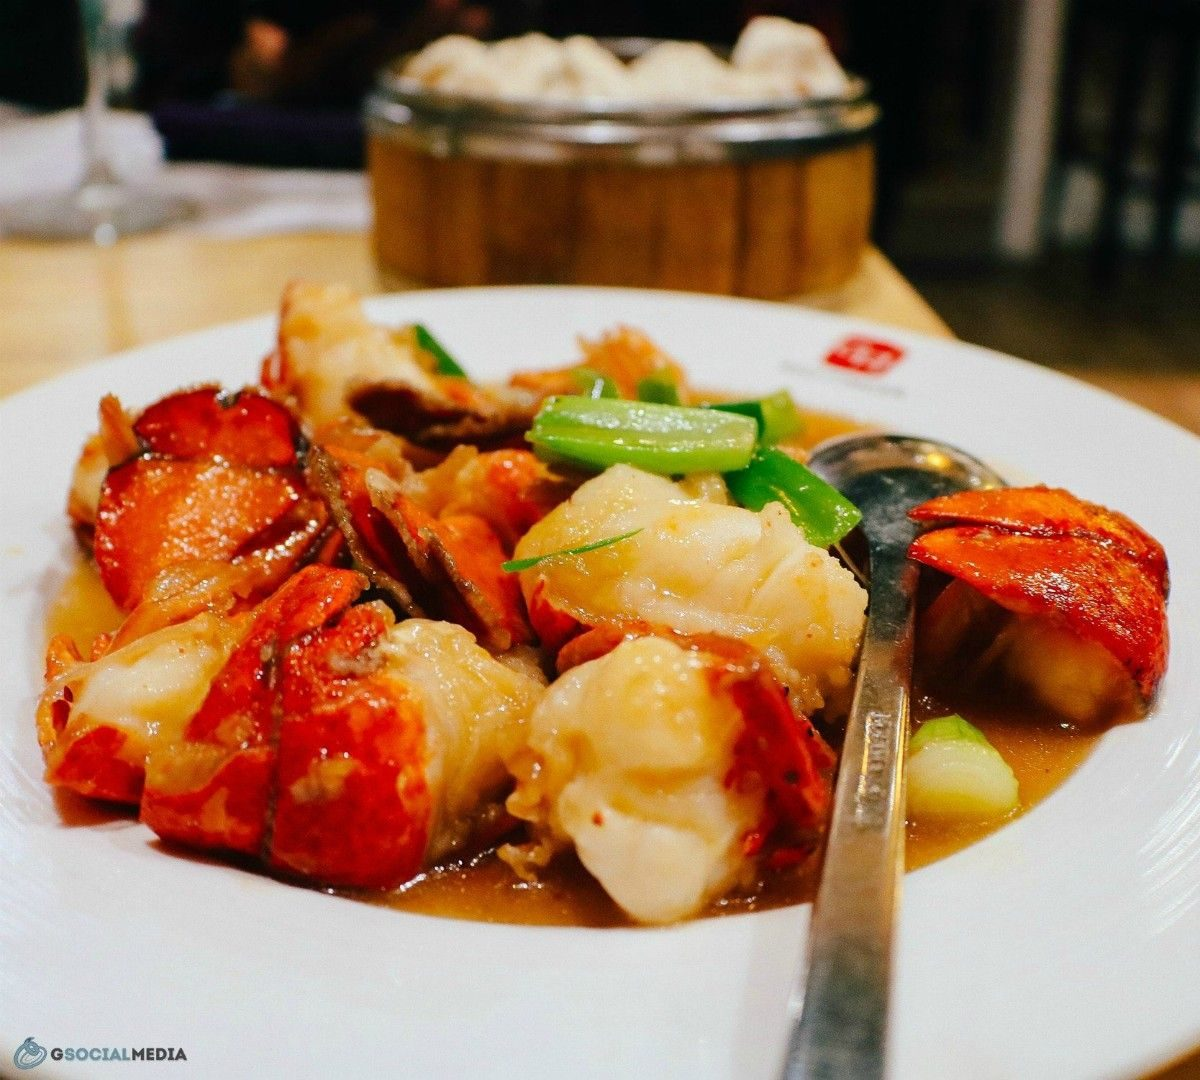 Lobster with Steamed Buns in the background